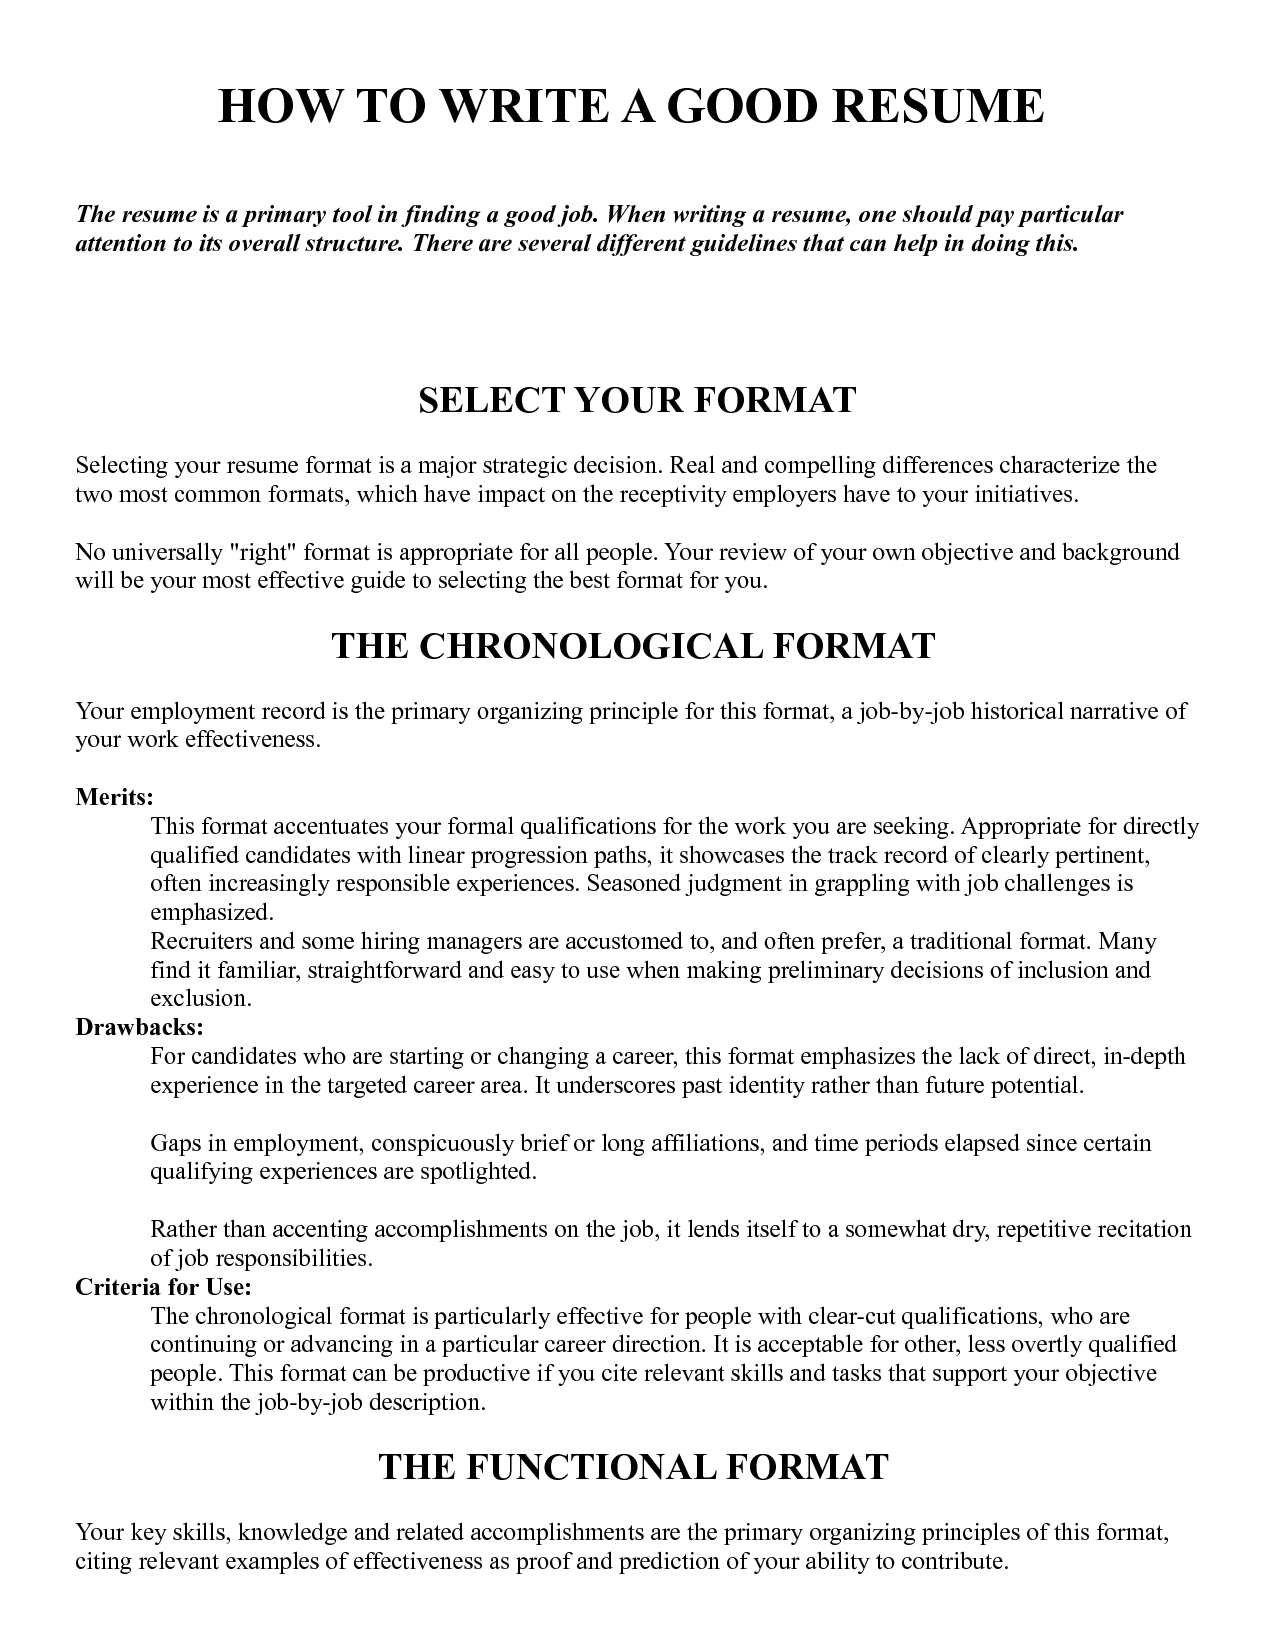 How To Make A Great Resume How To Write A Good Resume Pays Attention To Its Overall